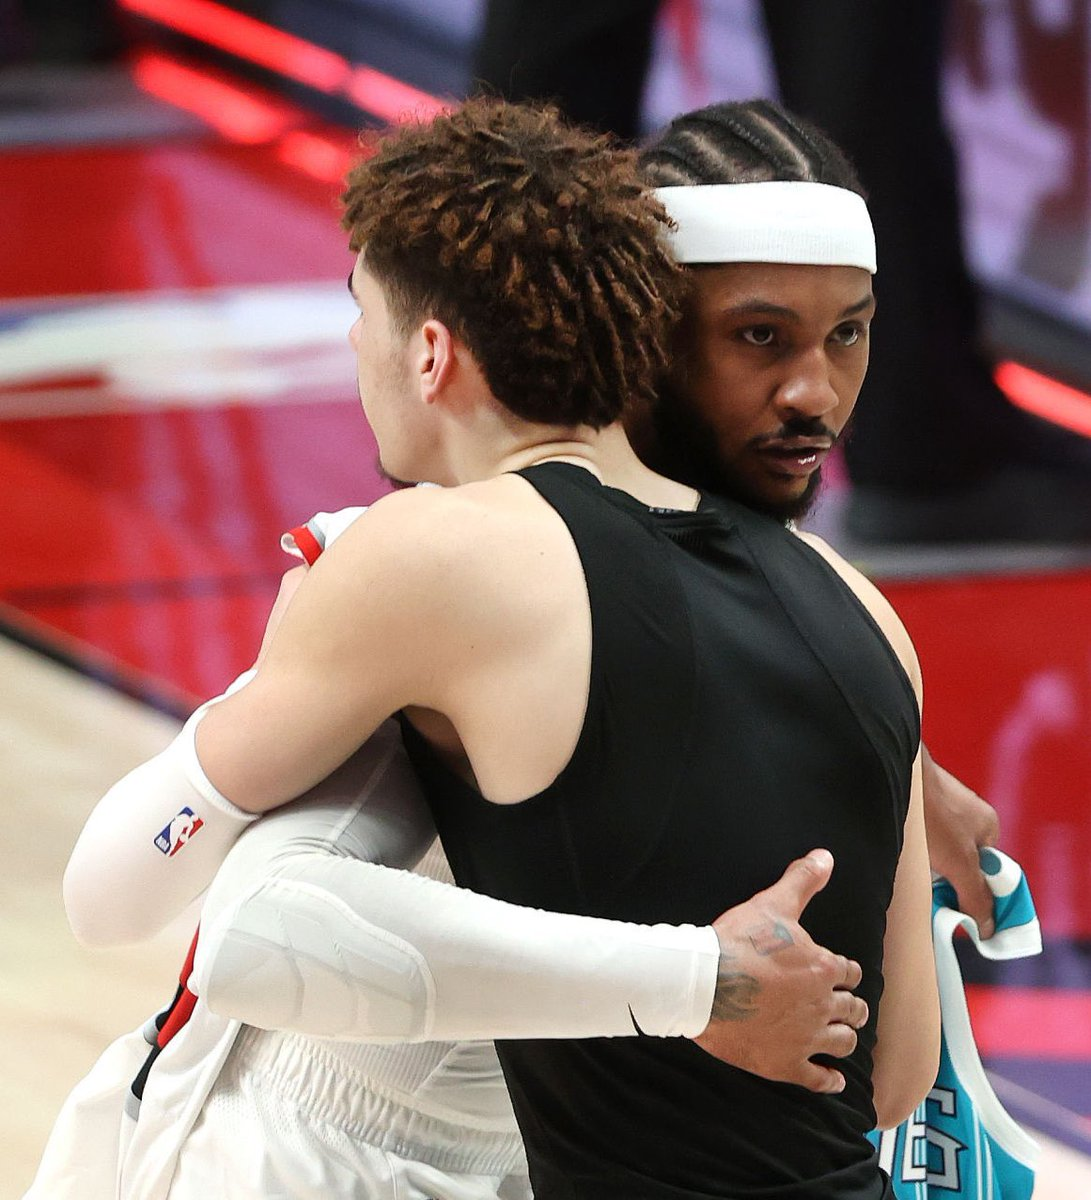 """""""LaMelo is going to be in the league for a long time, so you might as well use it. For me, it's an honor.""""  - Carmelo Anthony on people calling LaMelo Ball """"Melo""""...Respect. ✊✊  (via @highkin) https://t.co/9shsA8Iqpd"""